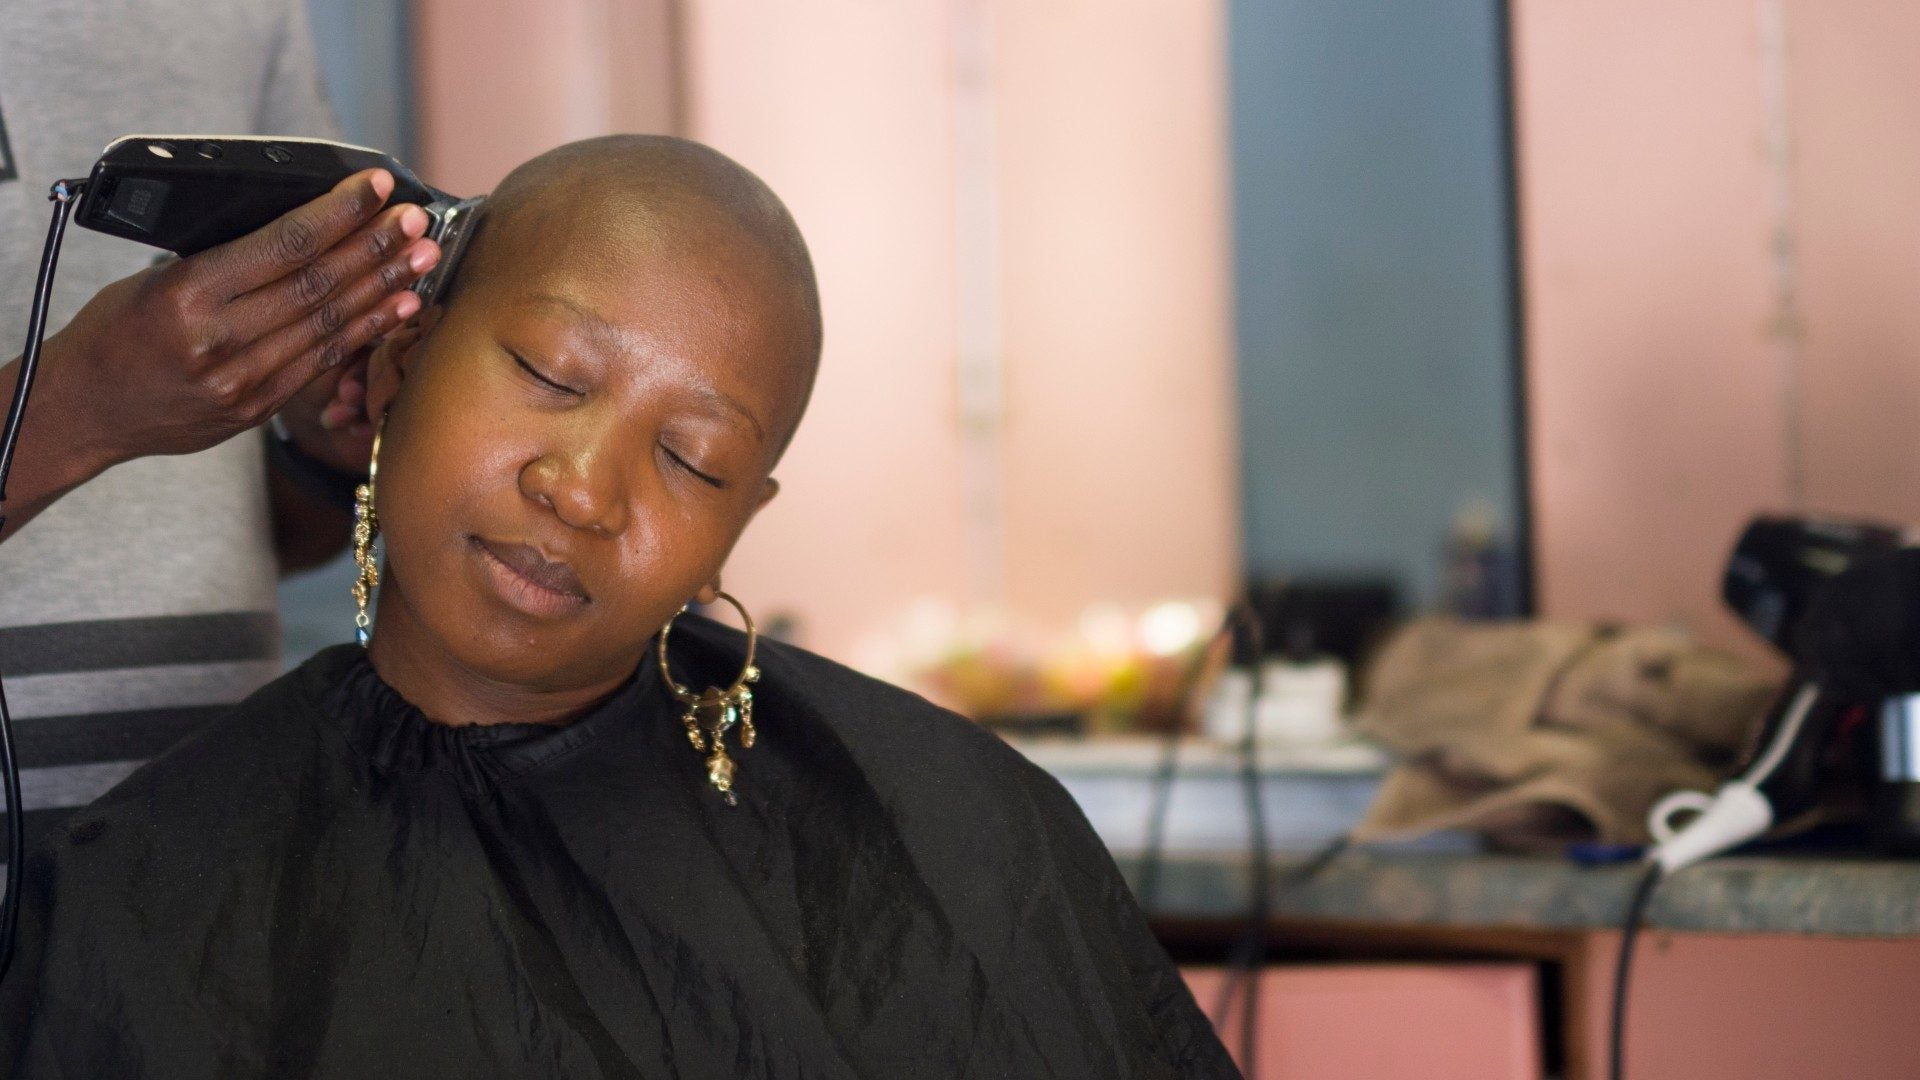 Expert Tips And Protective Products For Women With Bald Heads